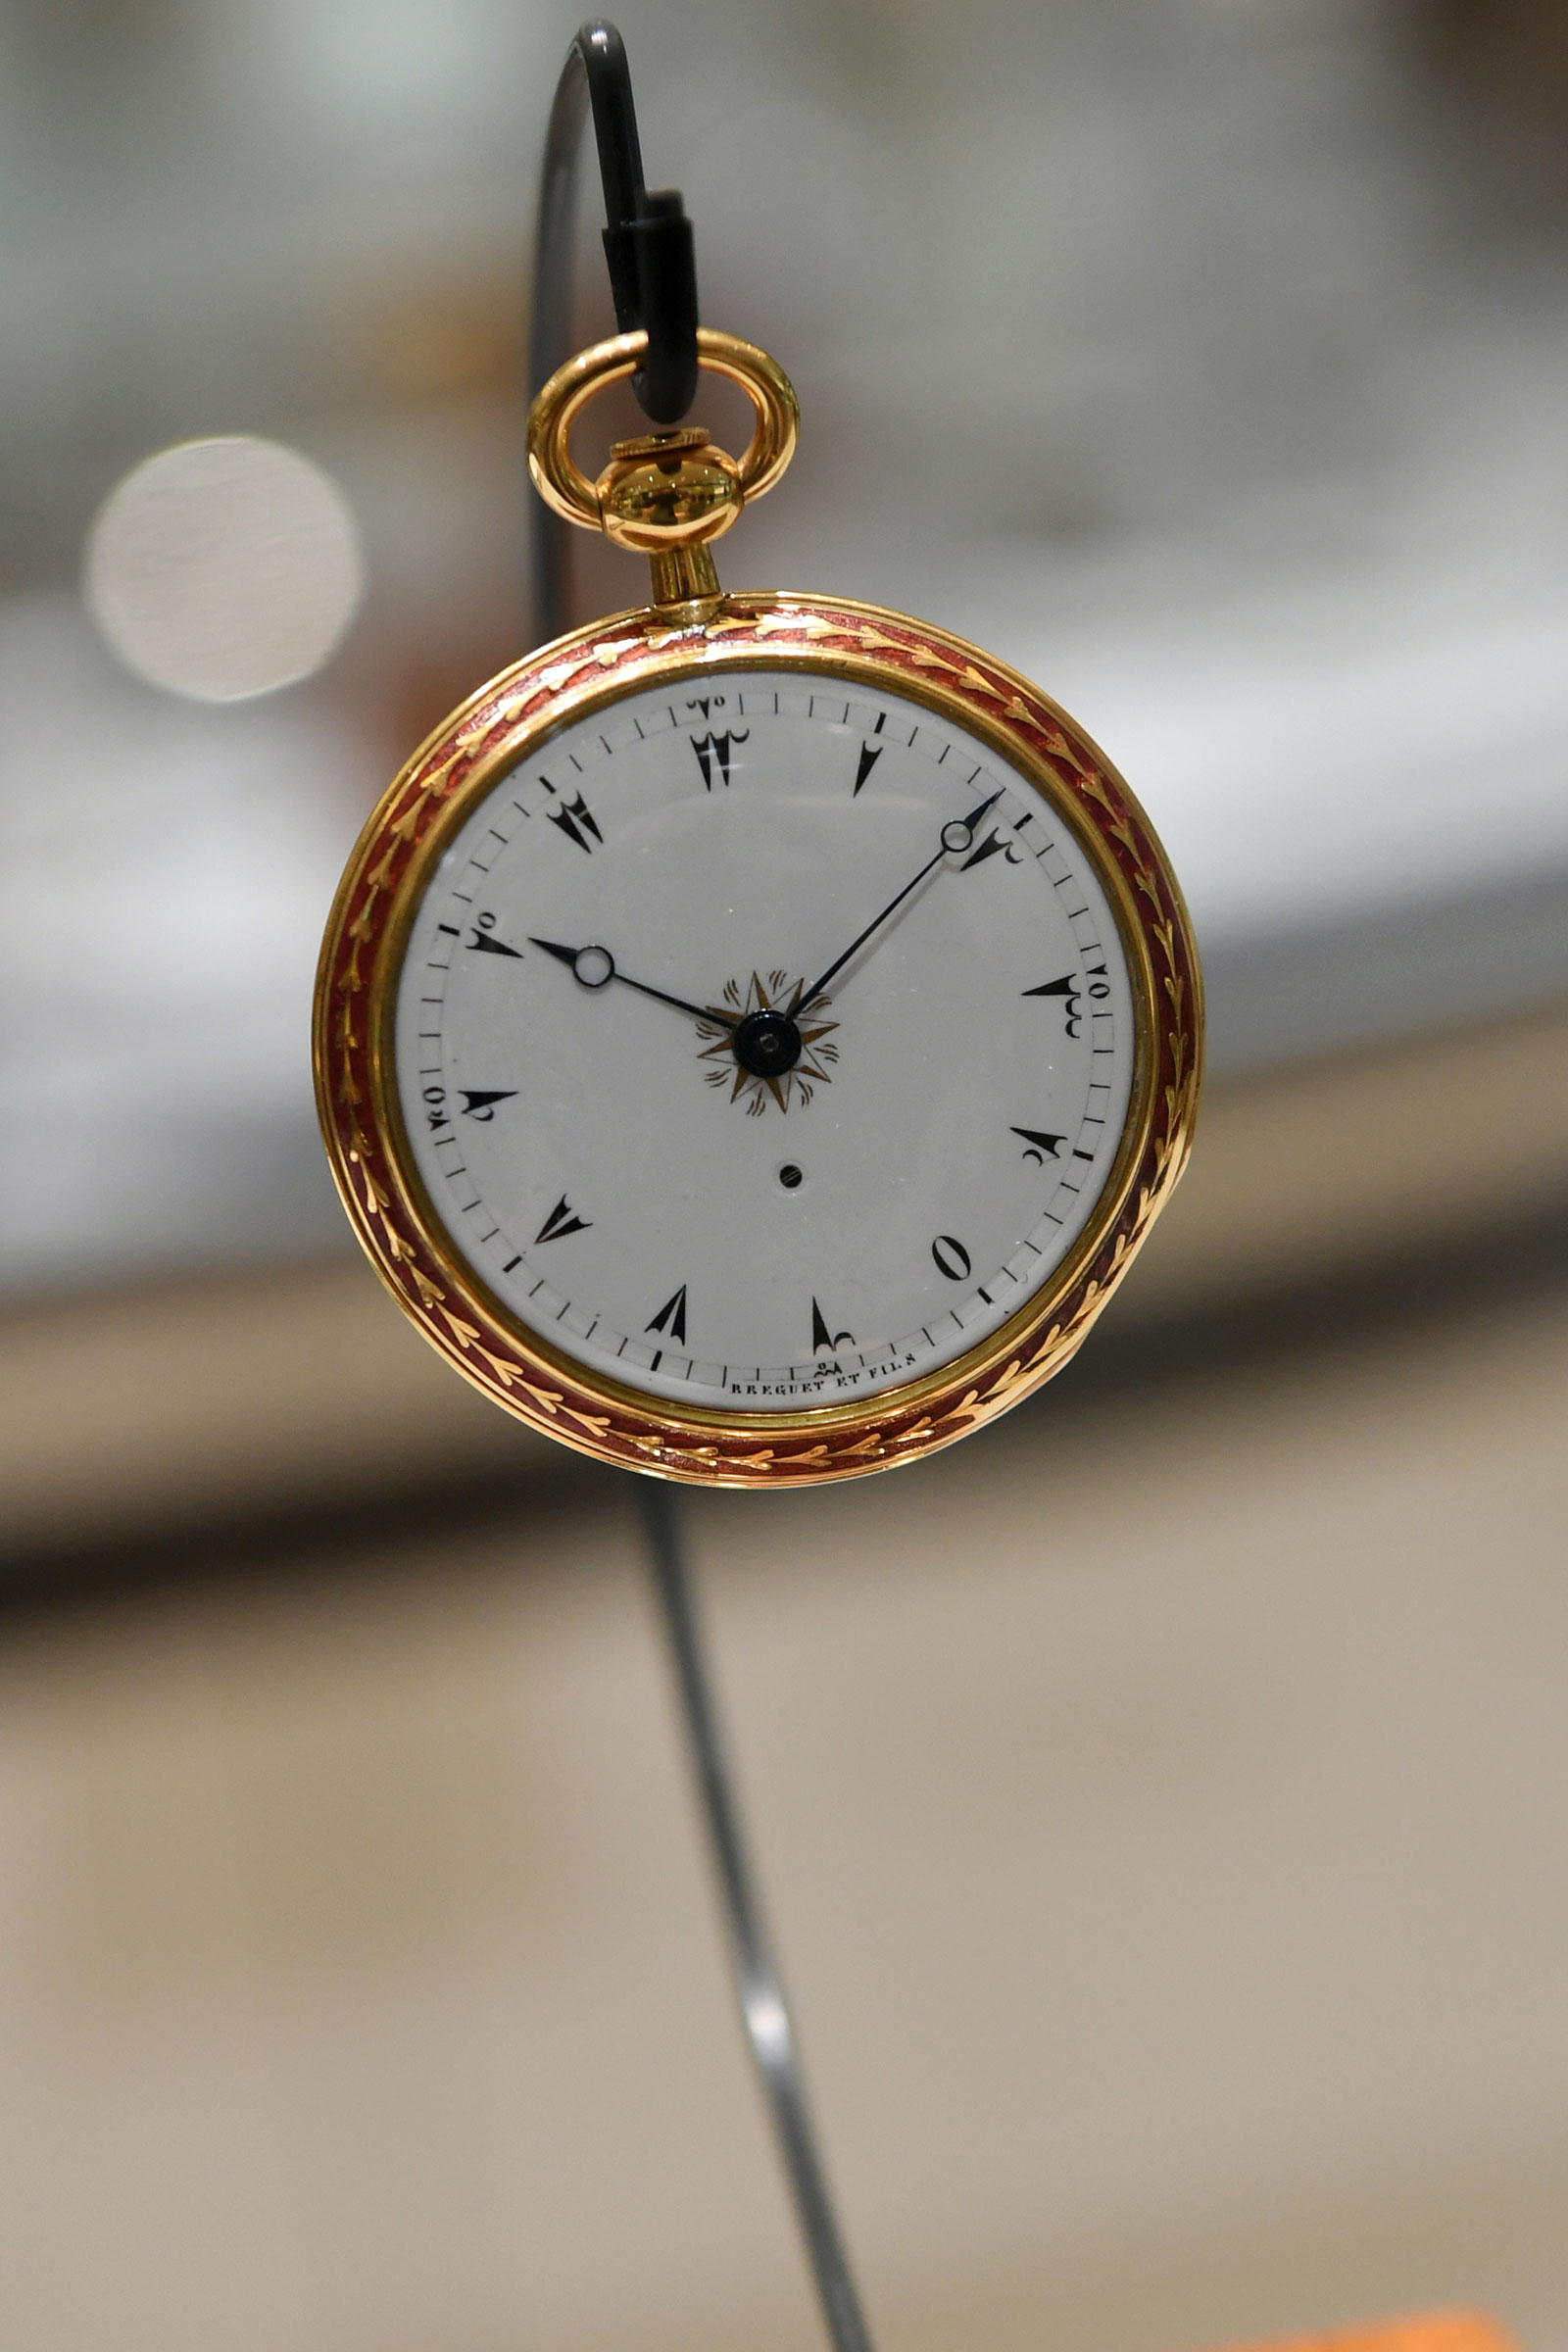 Breguet Turkish pocket watch no. 2952 dial